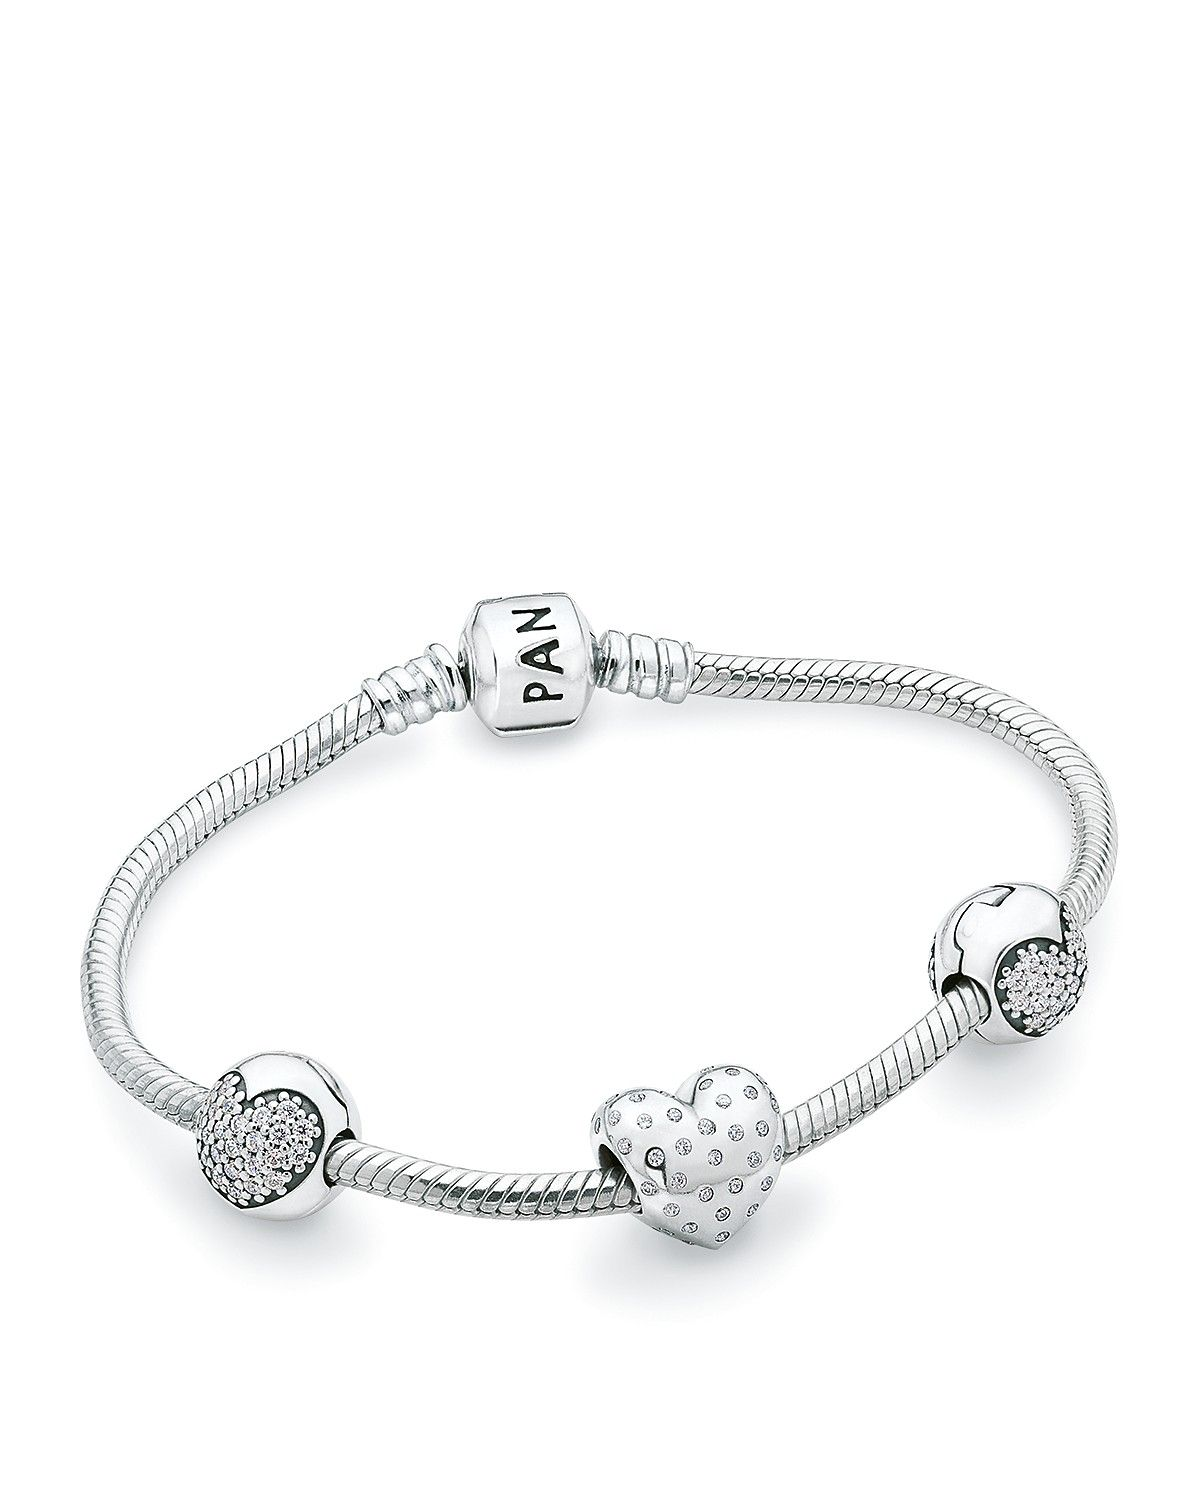 Pandora Jewelry Bracelet Charms: Jewelry: Bobbles And Bangles